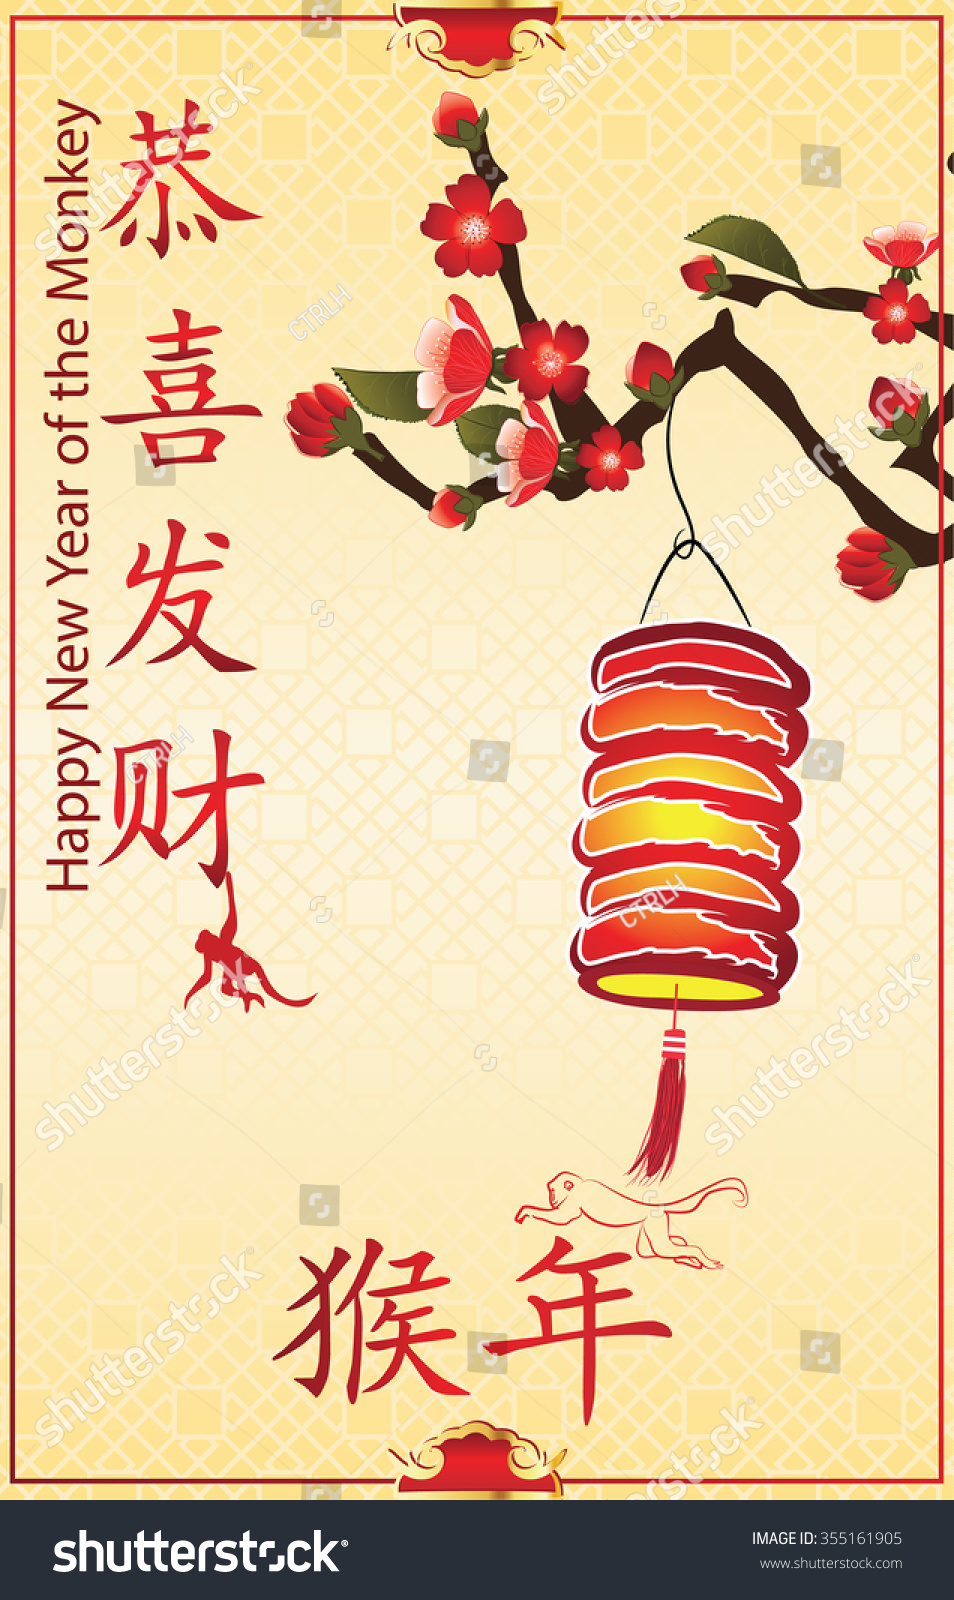 Business Chinese New Year Greeting Card Stock Vector 355161905 ...